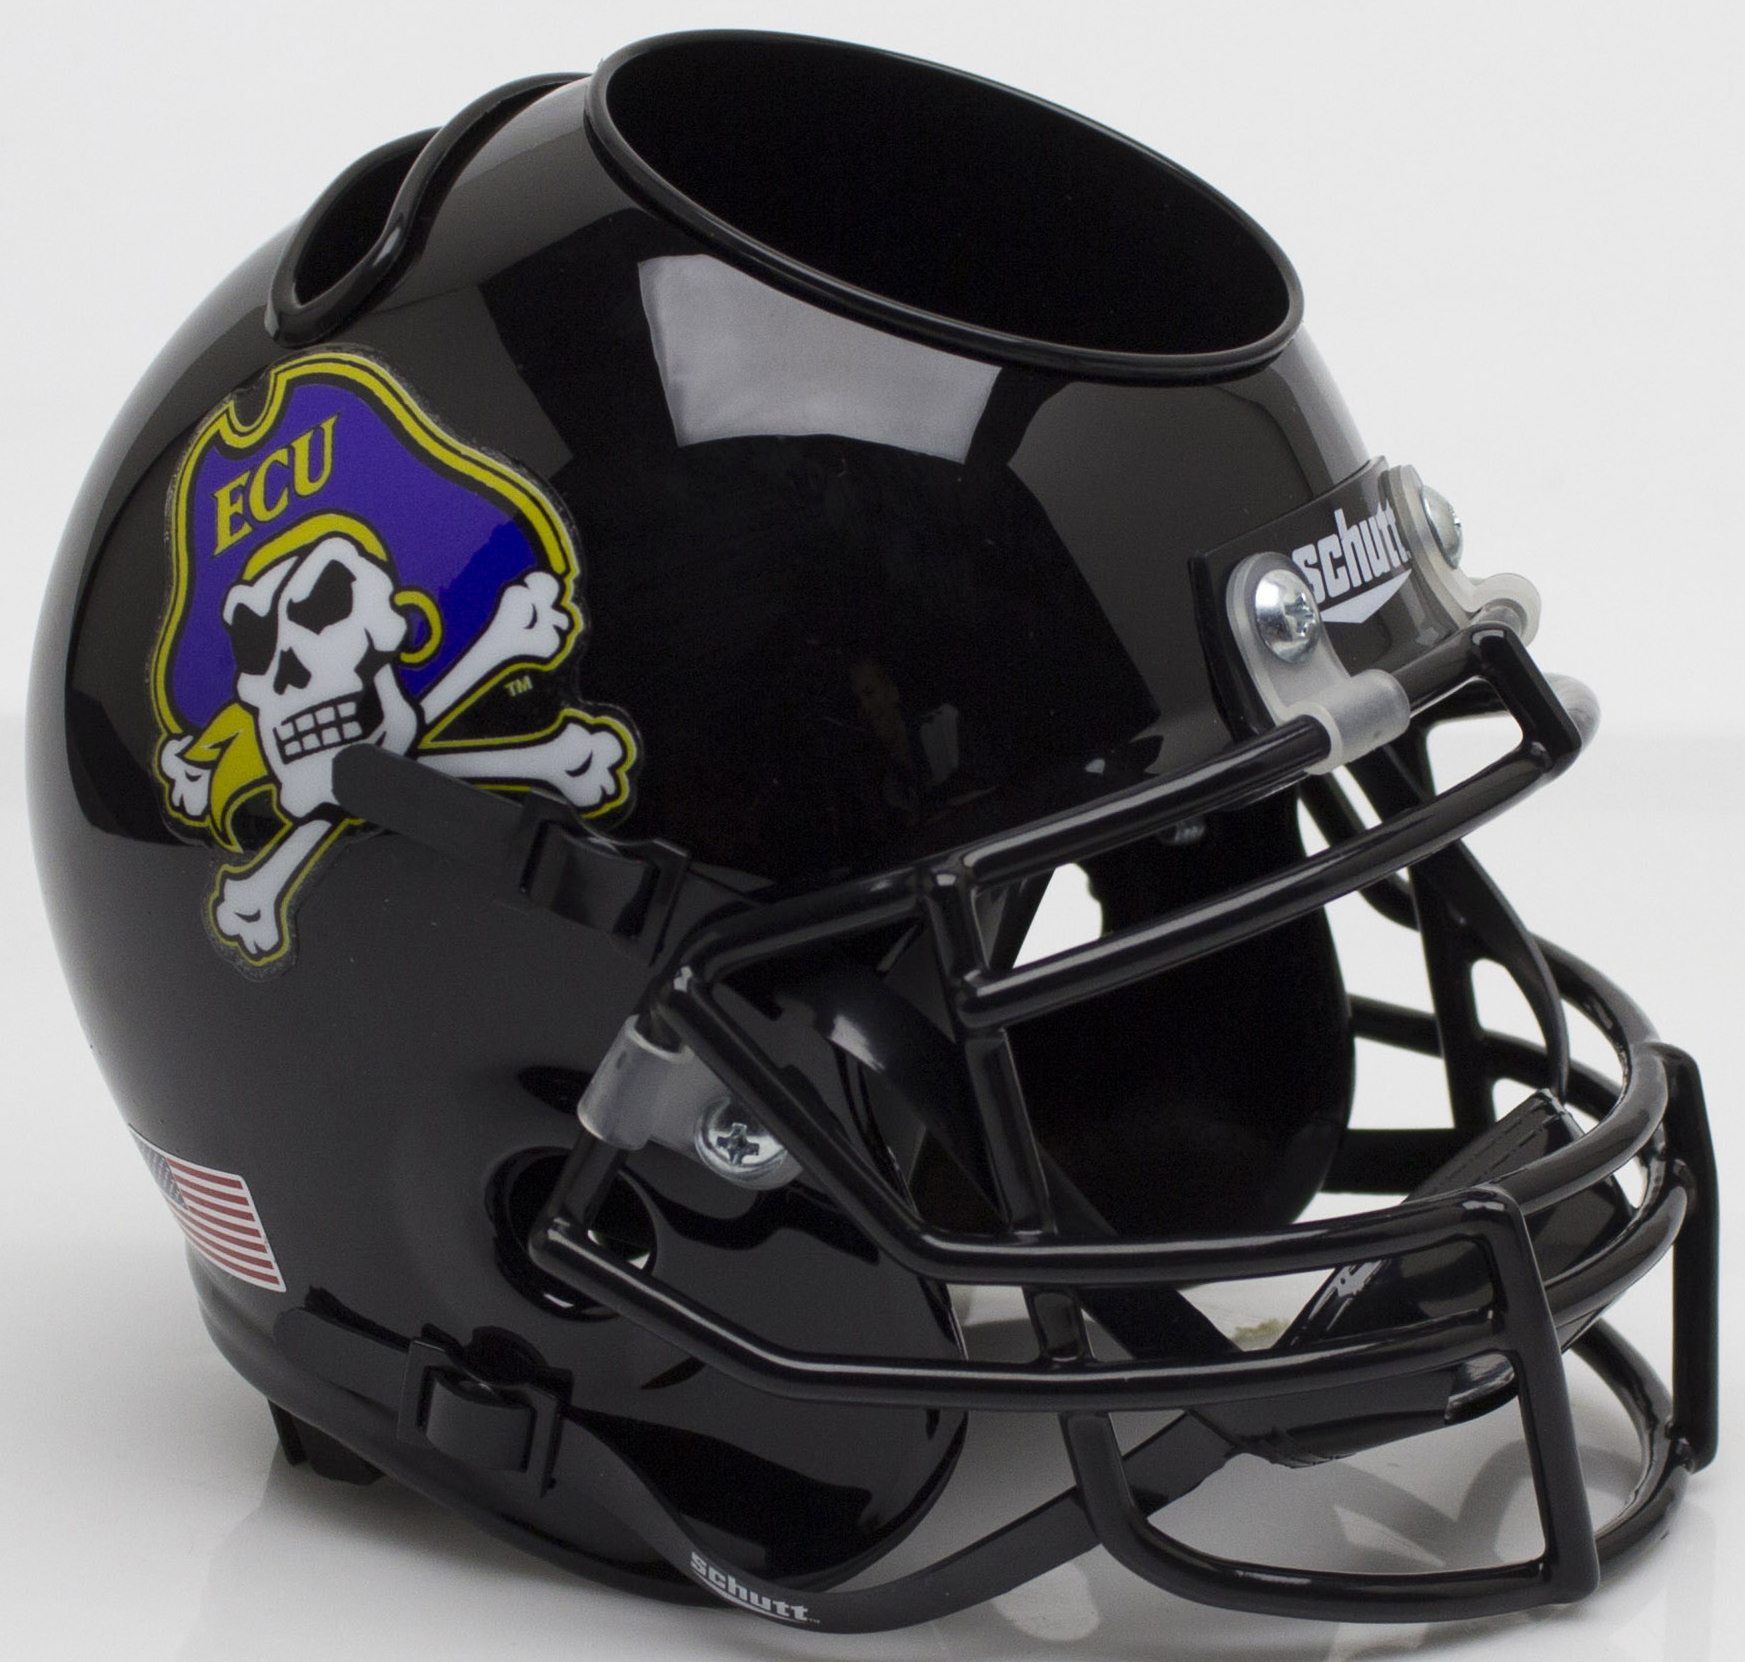 East Carolina Pirates Miniature Football Helmet Desk Caddy <B>Black</B>